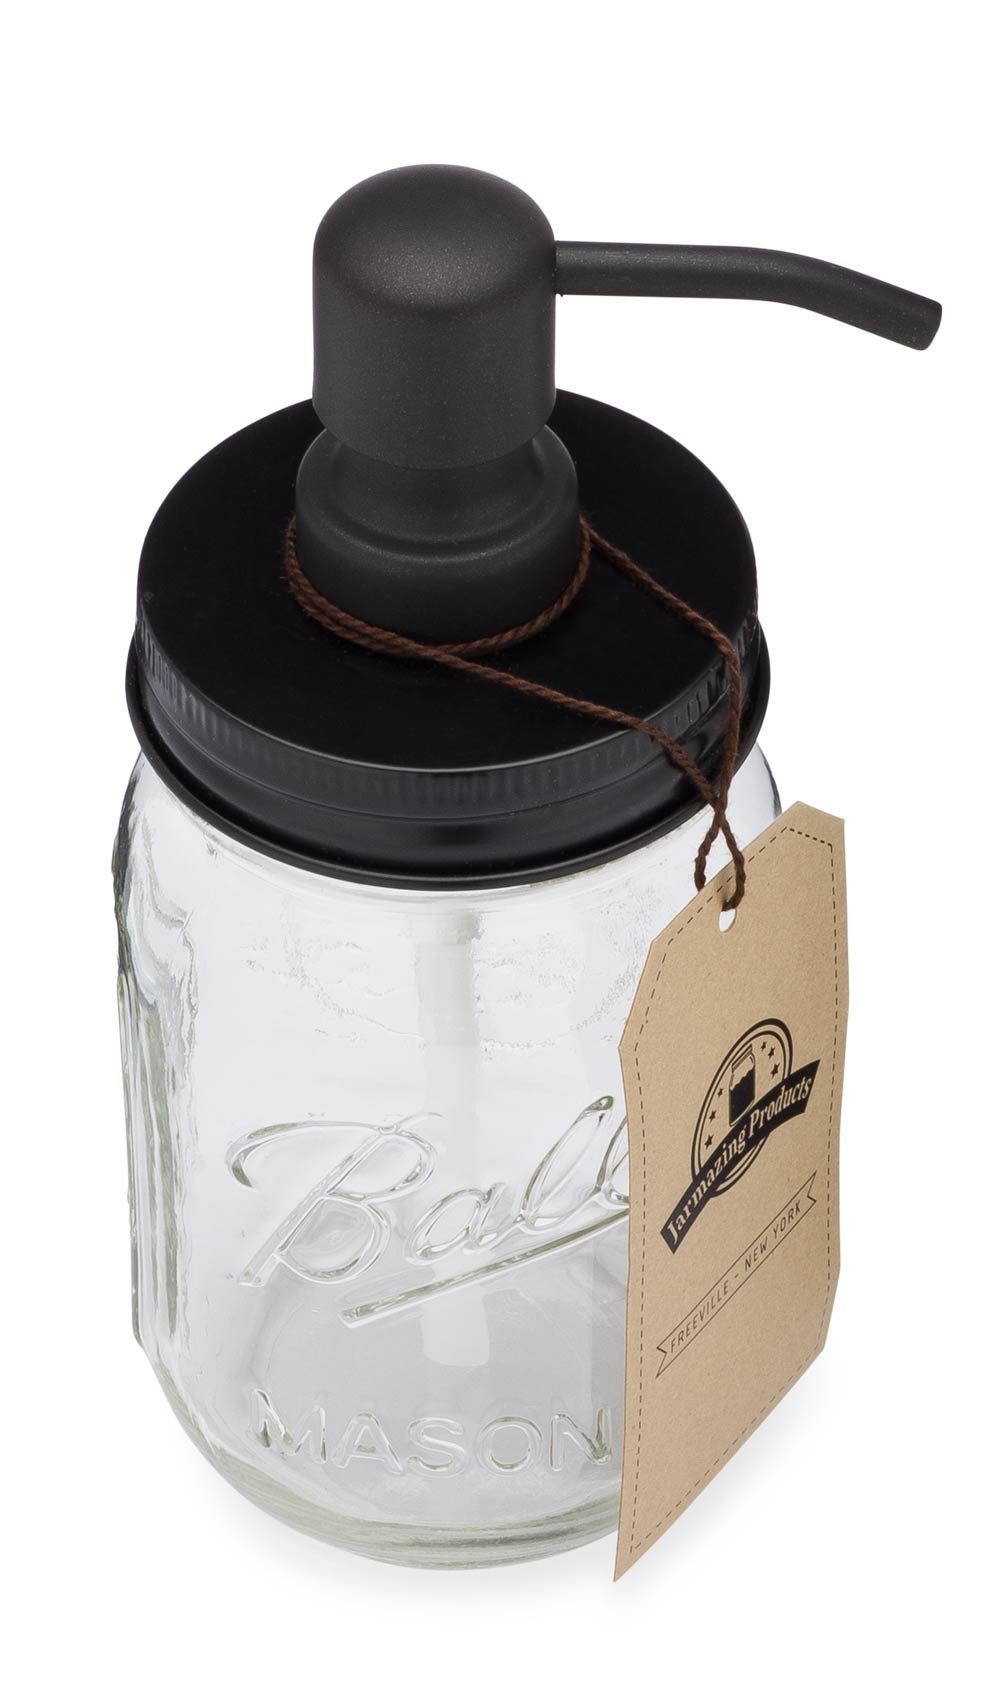 Jarmazing Products Mason Jar Soap Dispenser - Black - With 16 Ounce Ball Mason Jar - Made from Rust Proof Stainless Steel by Jarmazing Products (Image #2)